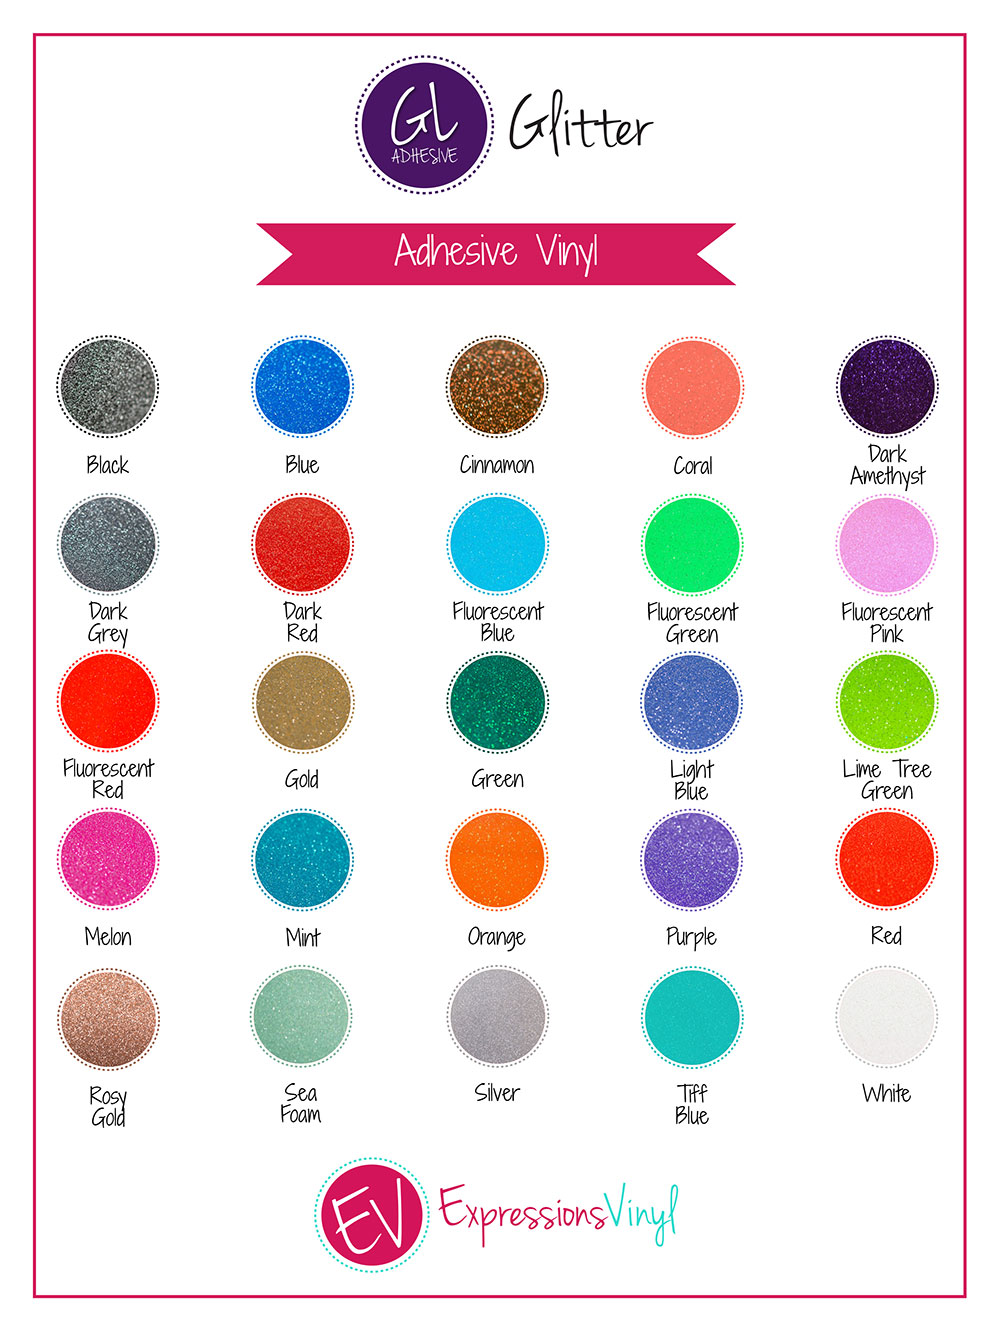 Glitter Adhesive Vinyl Color Chart